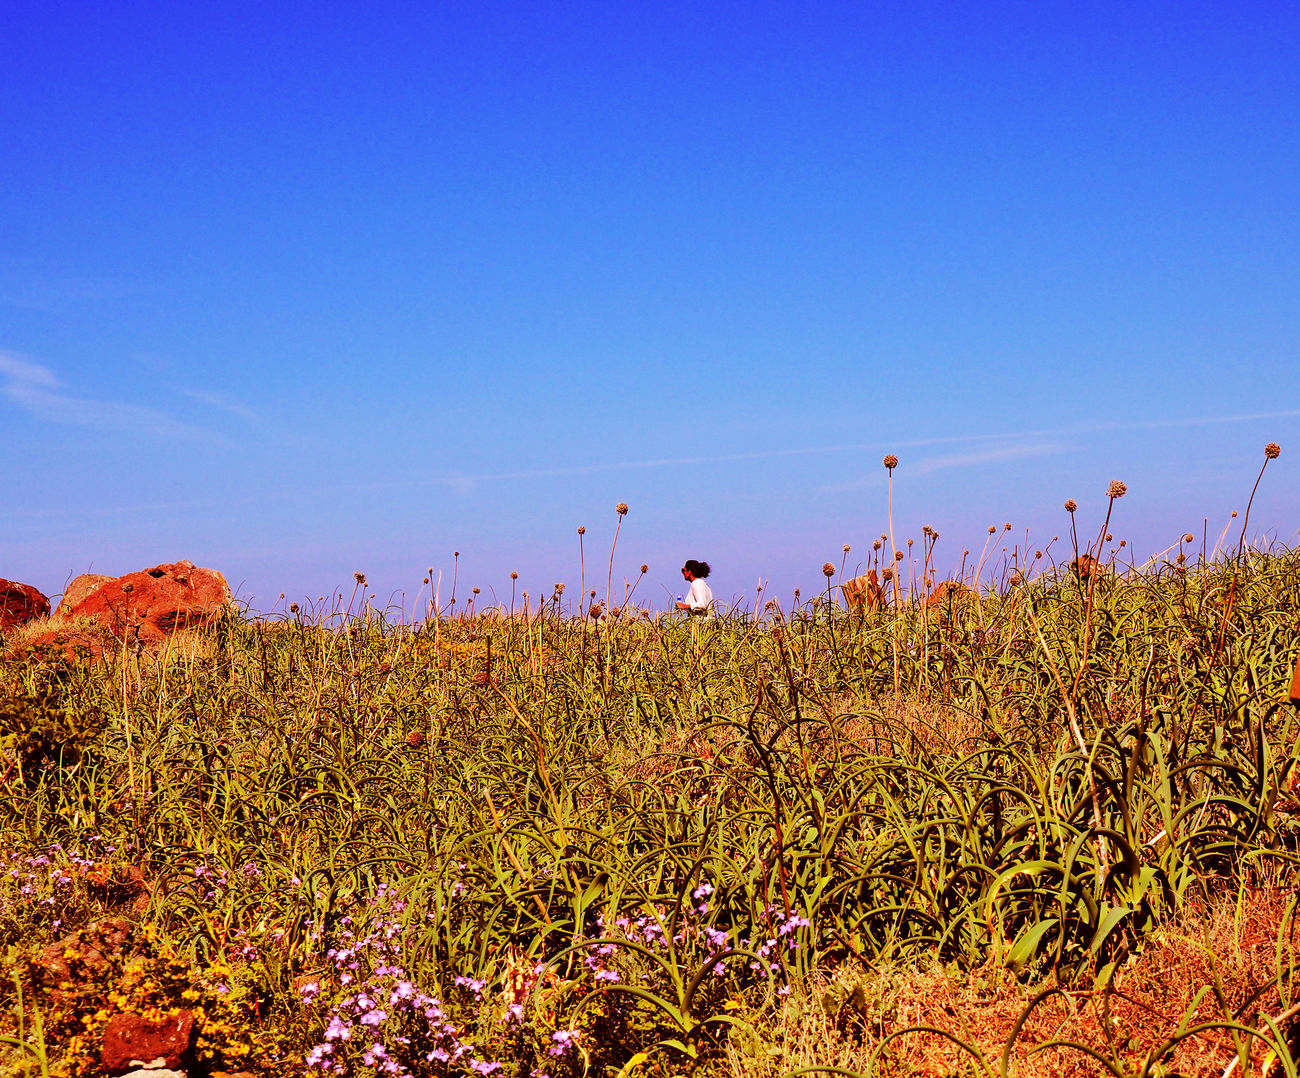 Beauty In Nature Blue Clear Sky Field Flower Grass Growth Nature Outdoors Sky Tranquil Scene